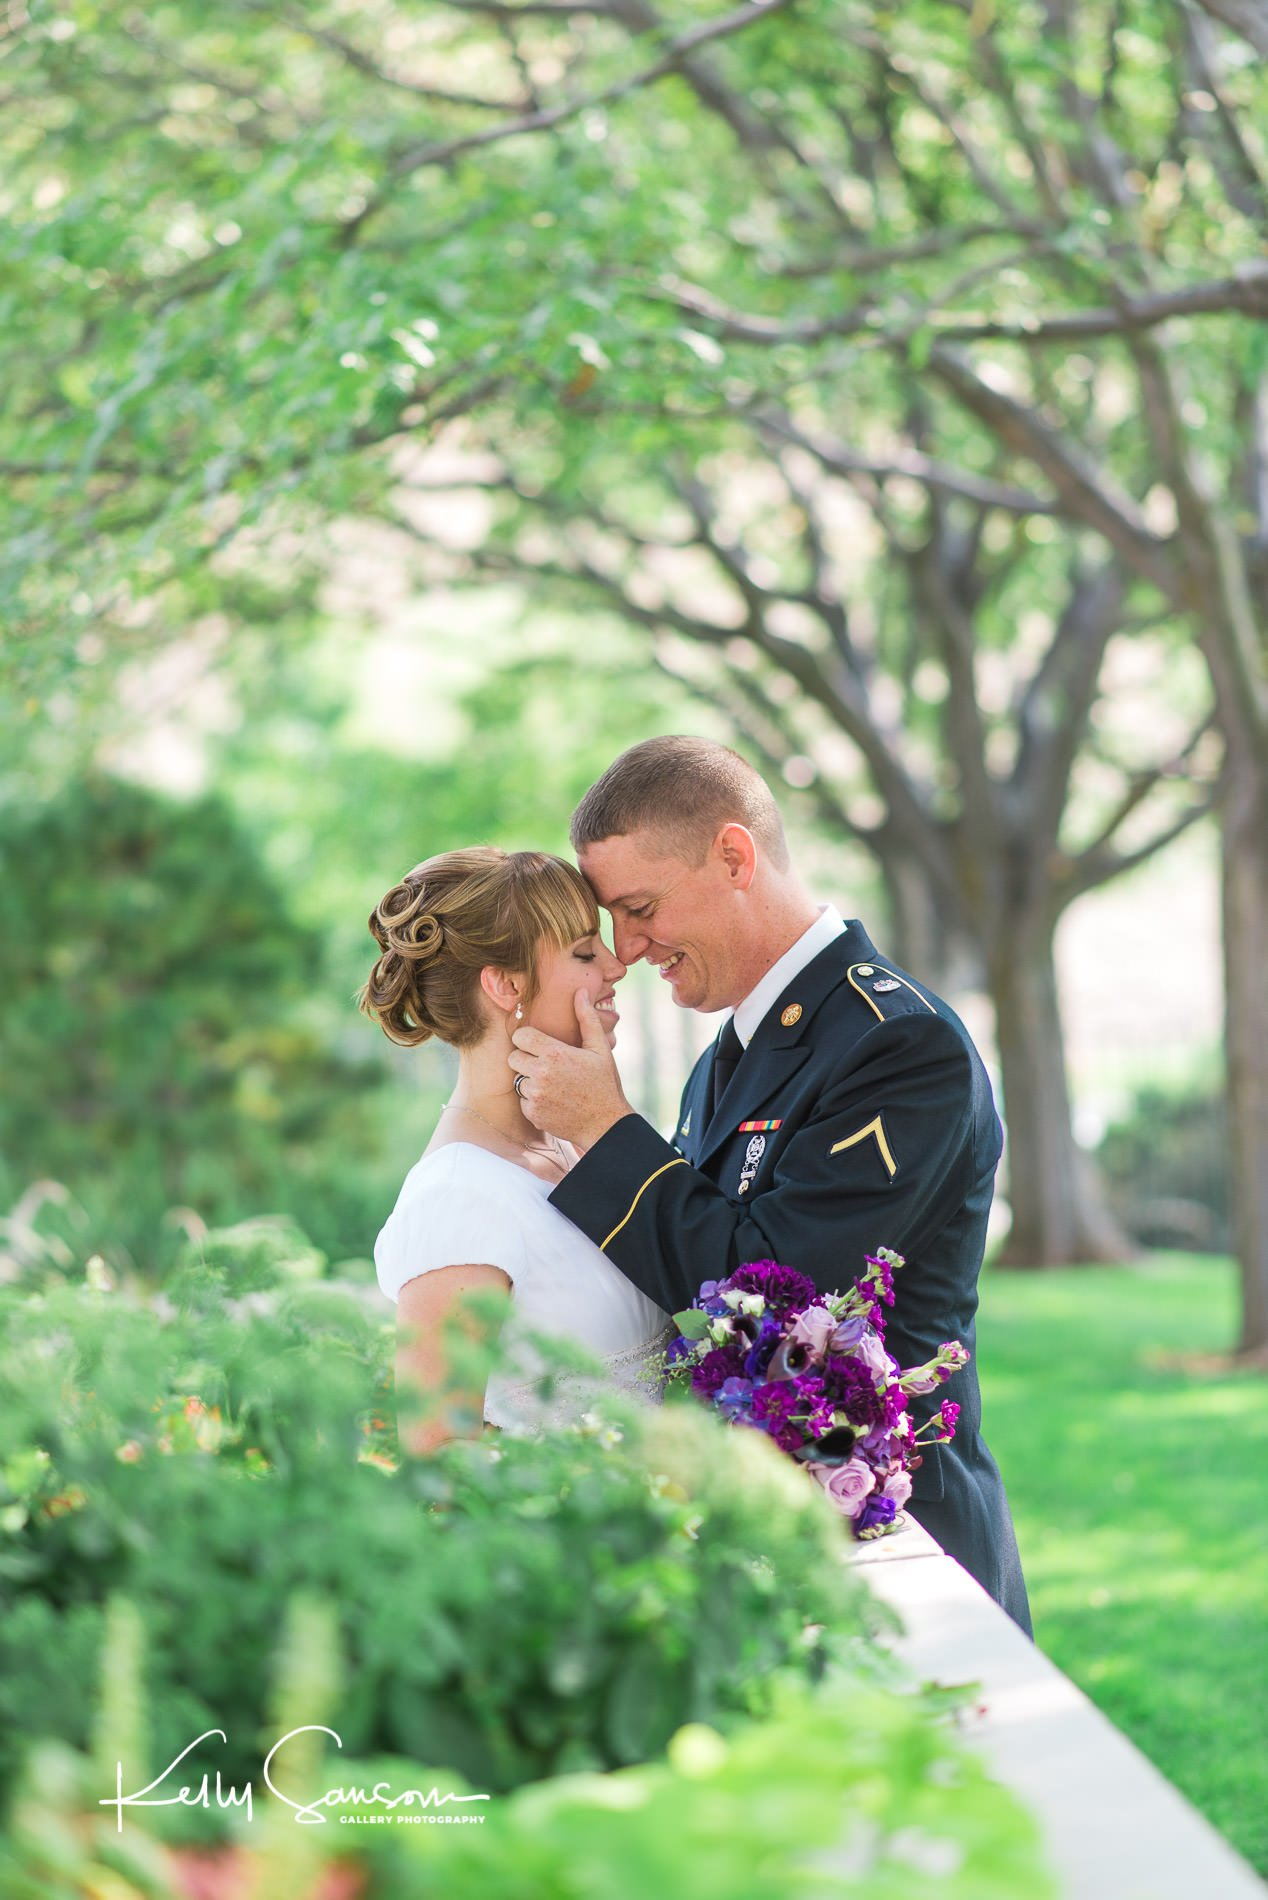 A groom in dress military touches his brides face for wedding photography at the Bountiful LDS temple.